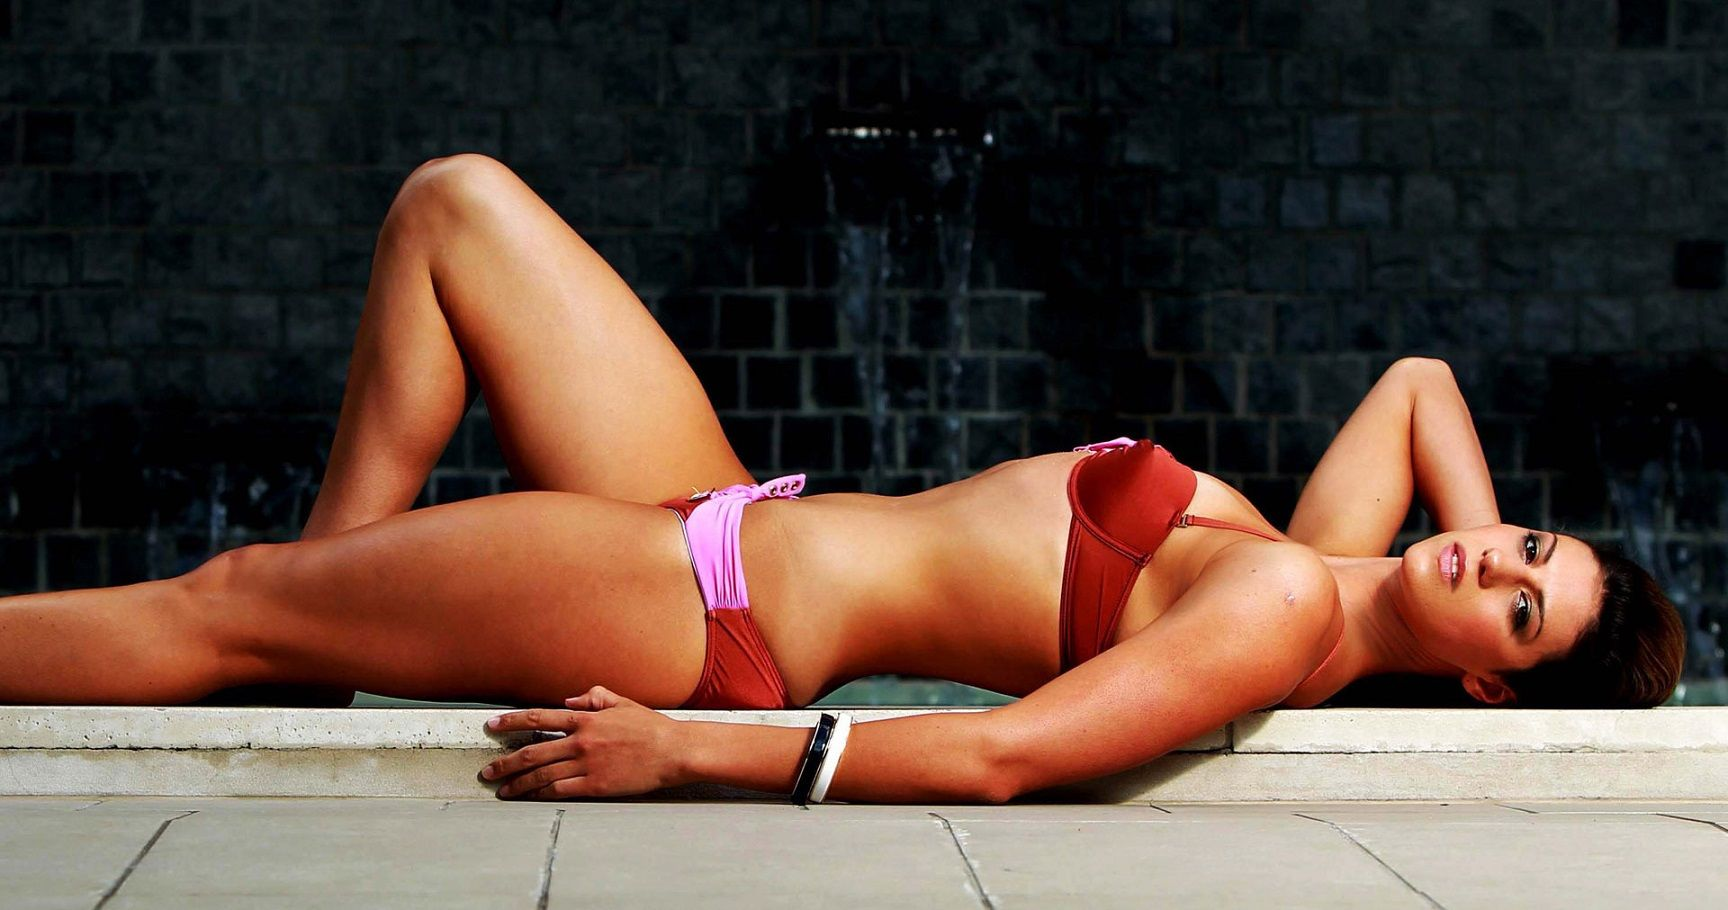 The 20 Hottest Female Swimmers in the World